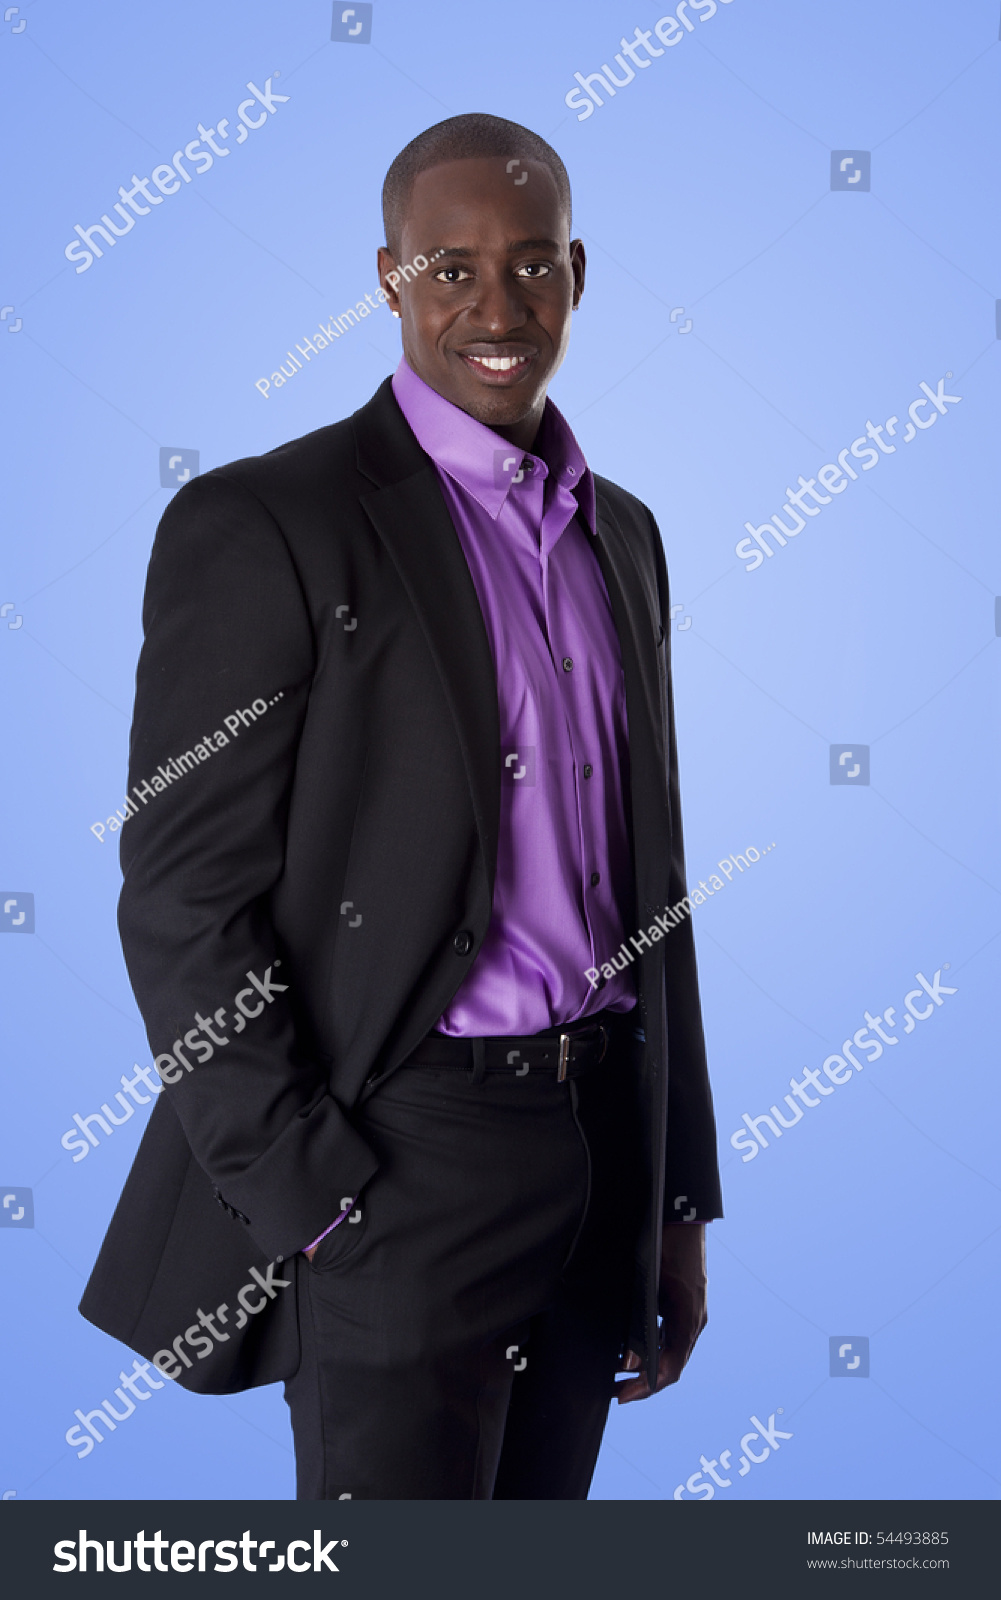 Handsome Happy African American Corporate Business Stock Photo